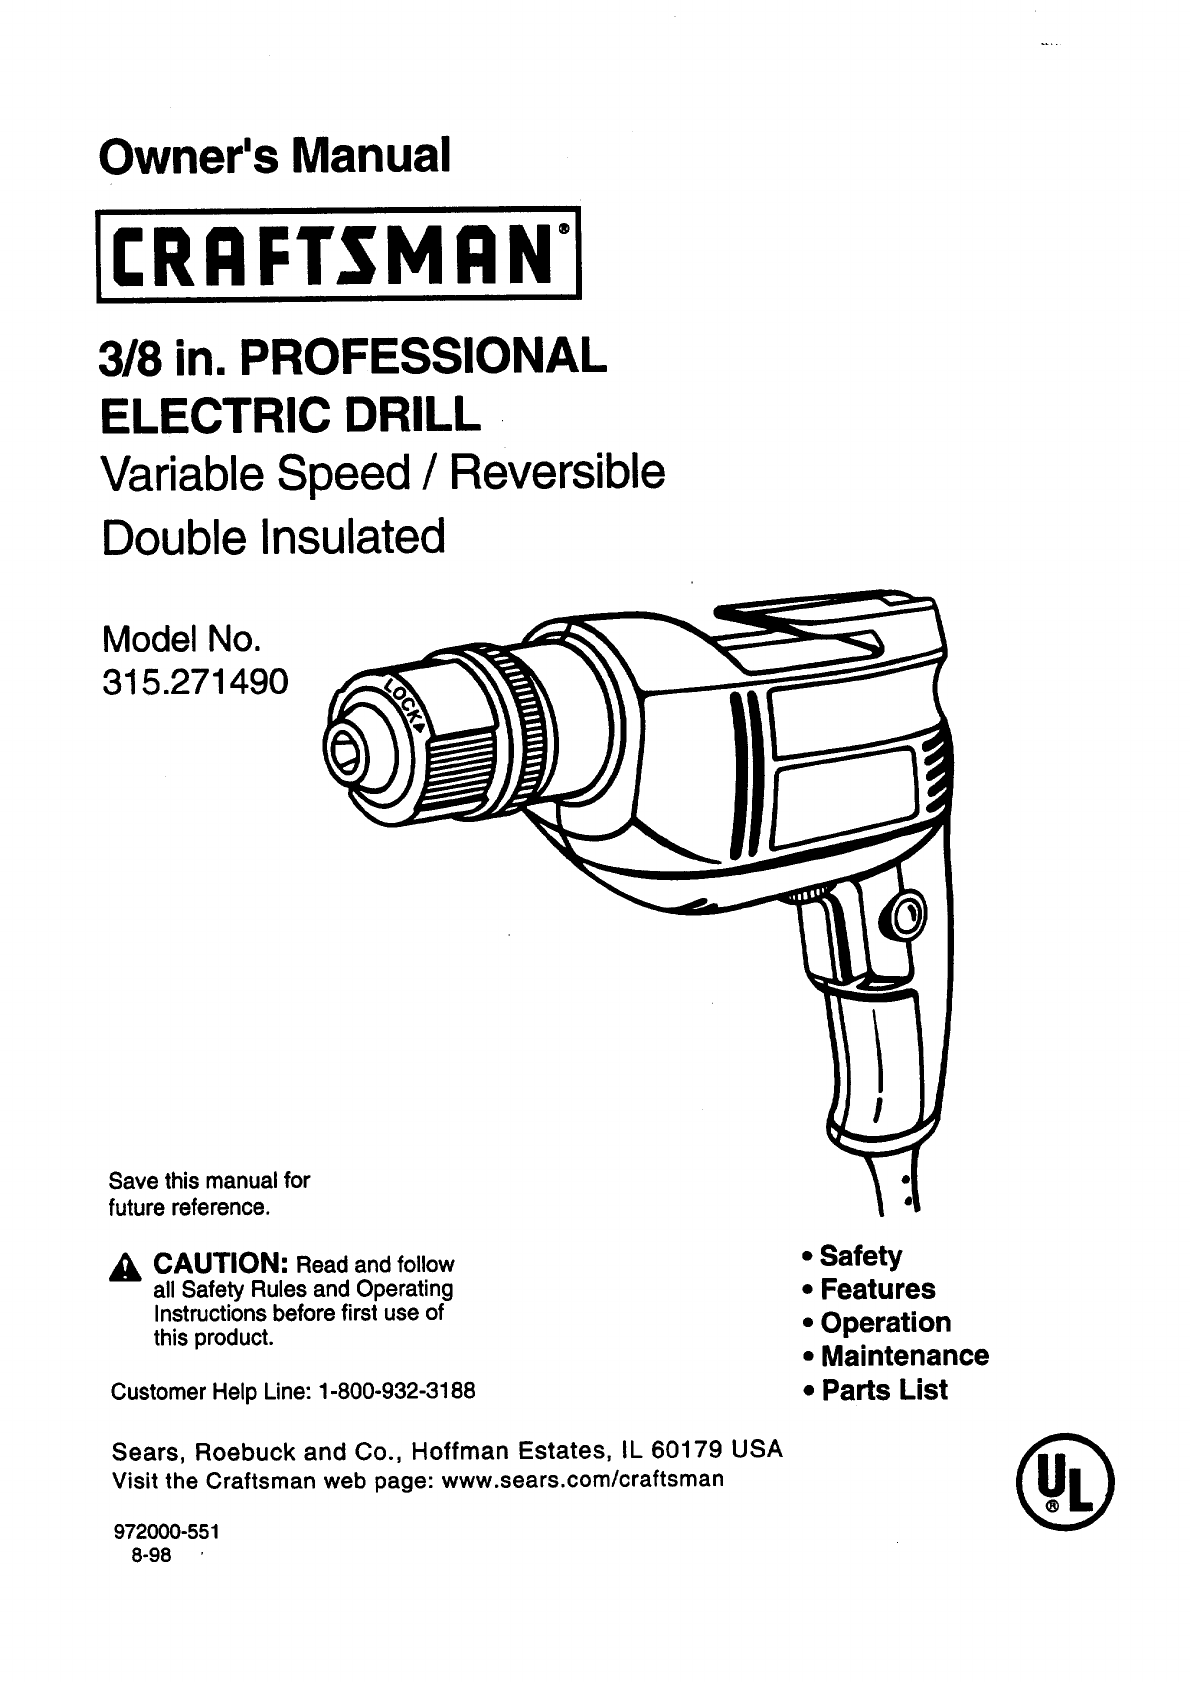 Craftsman Electric Drill Parts